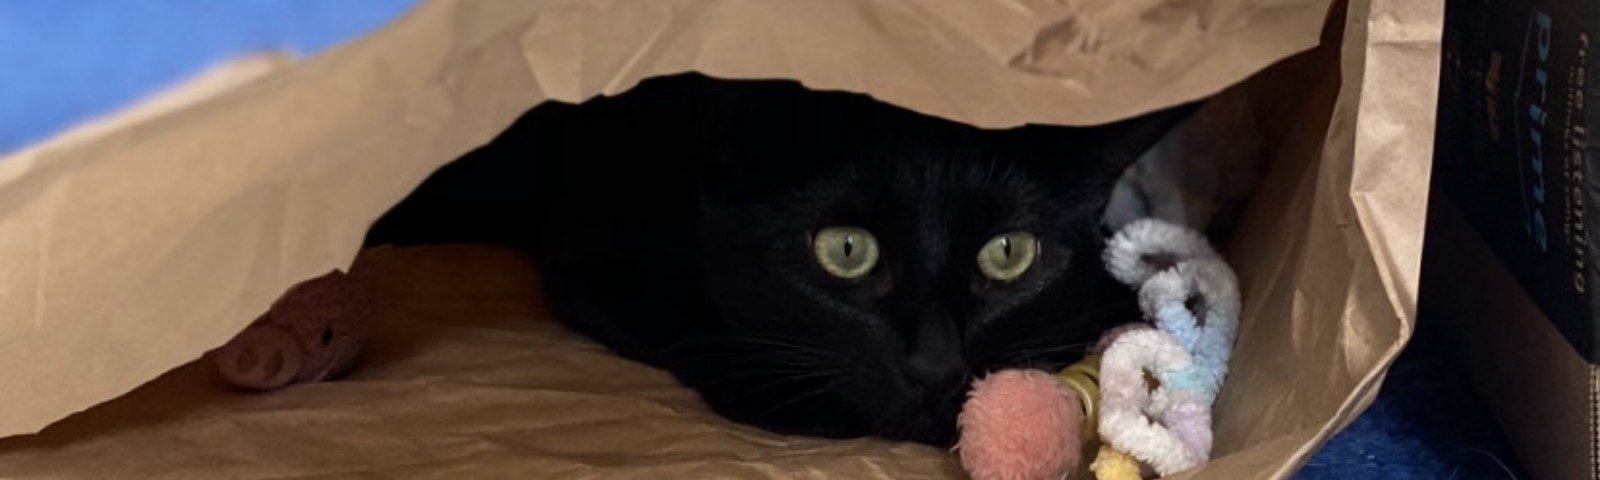 A black cat with yellow eyes hiding in a brown paper bag that's been tipped on its side.